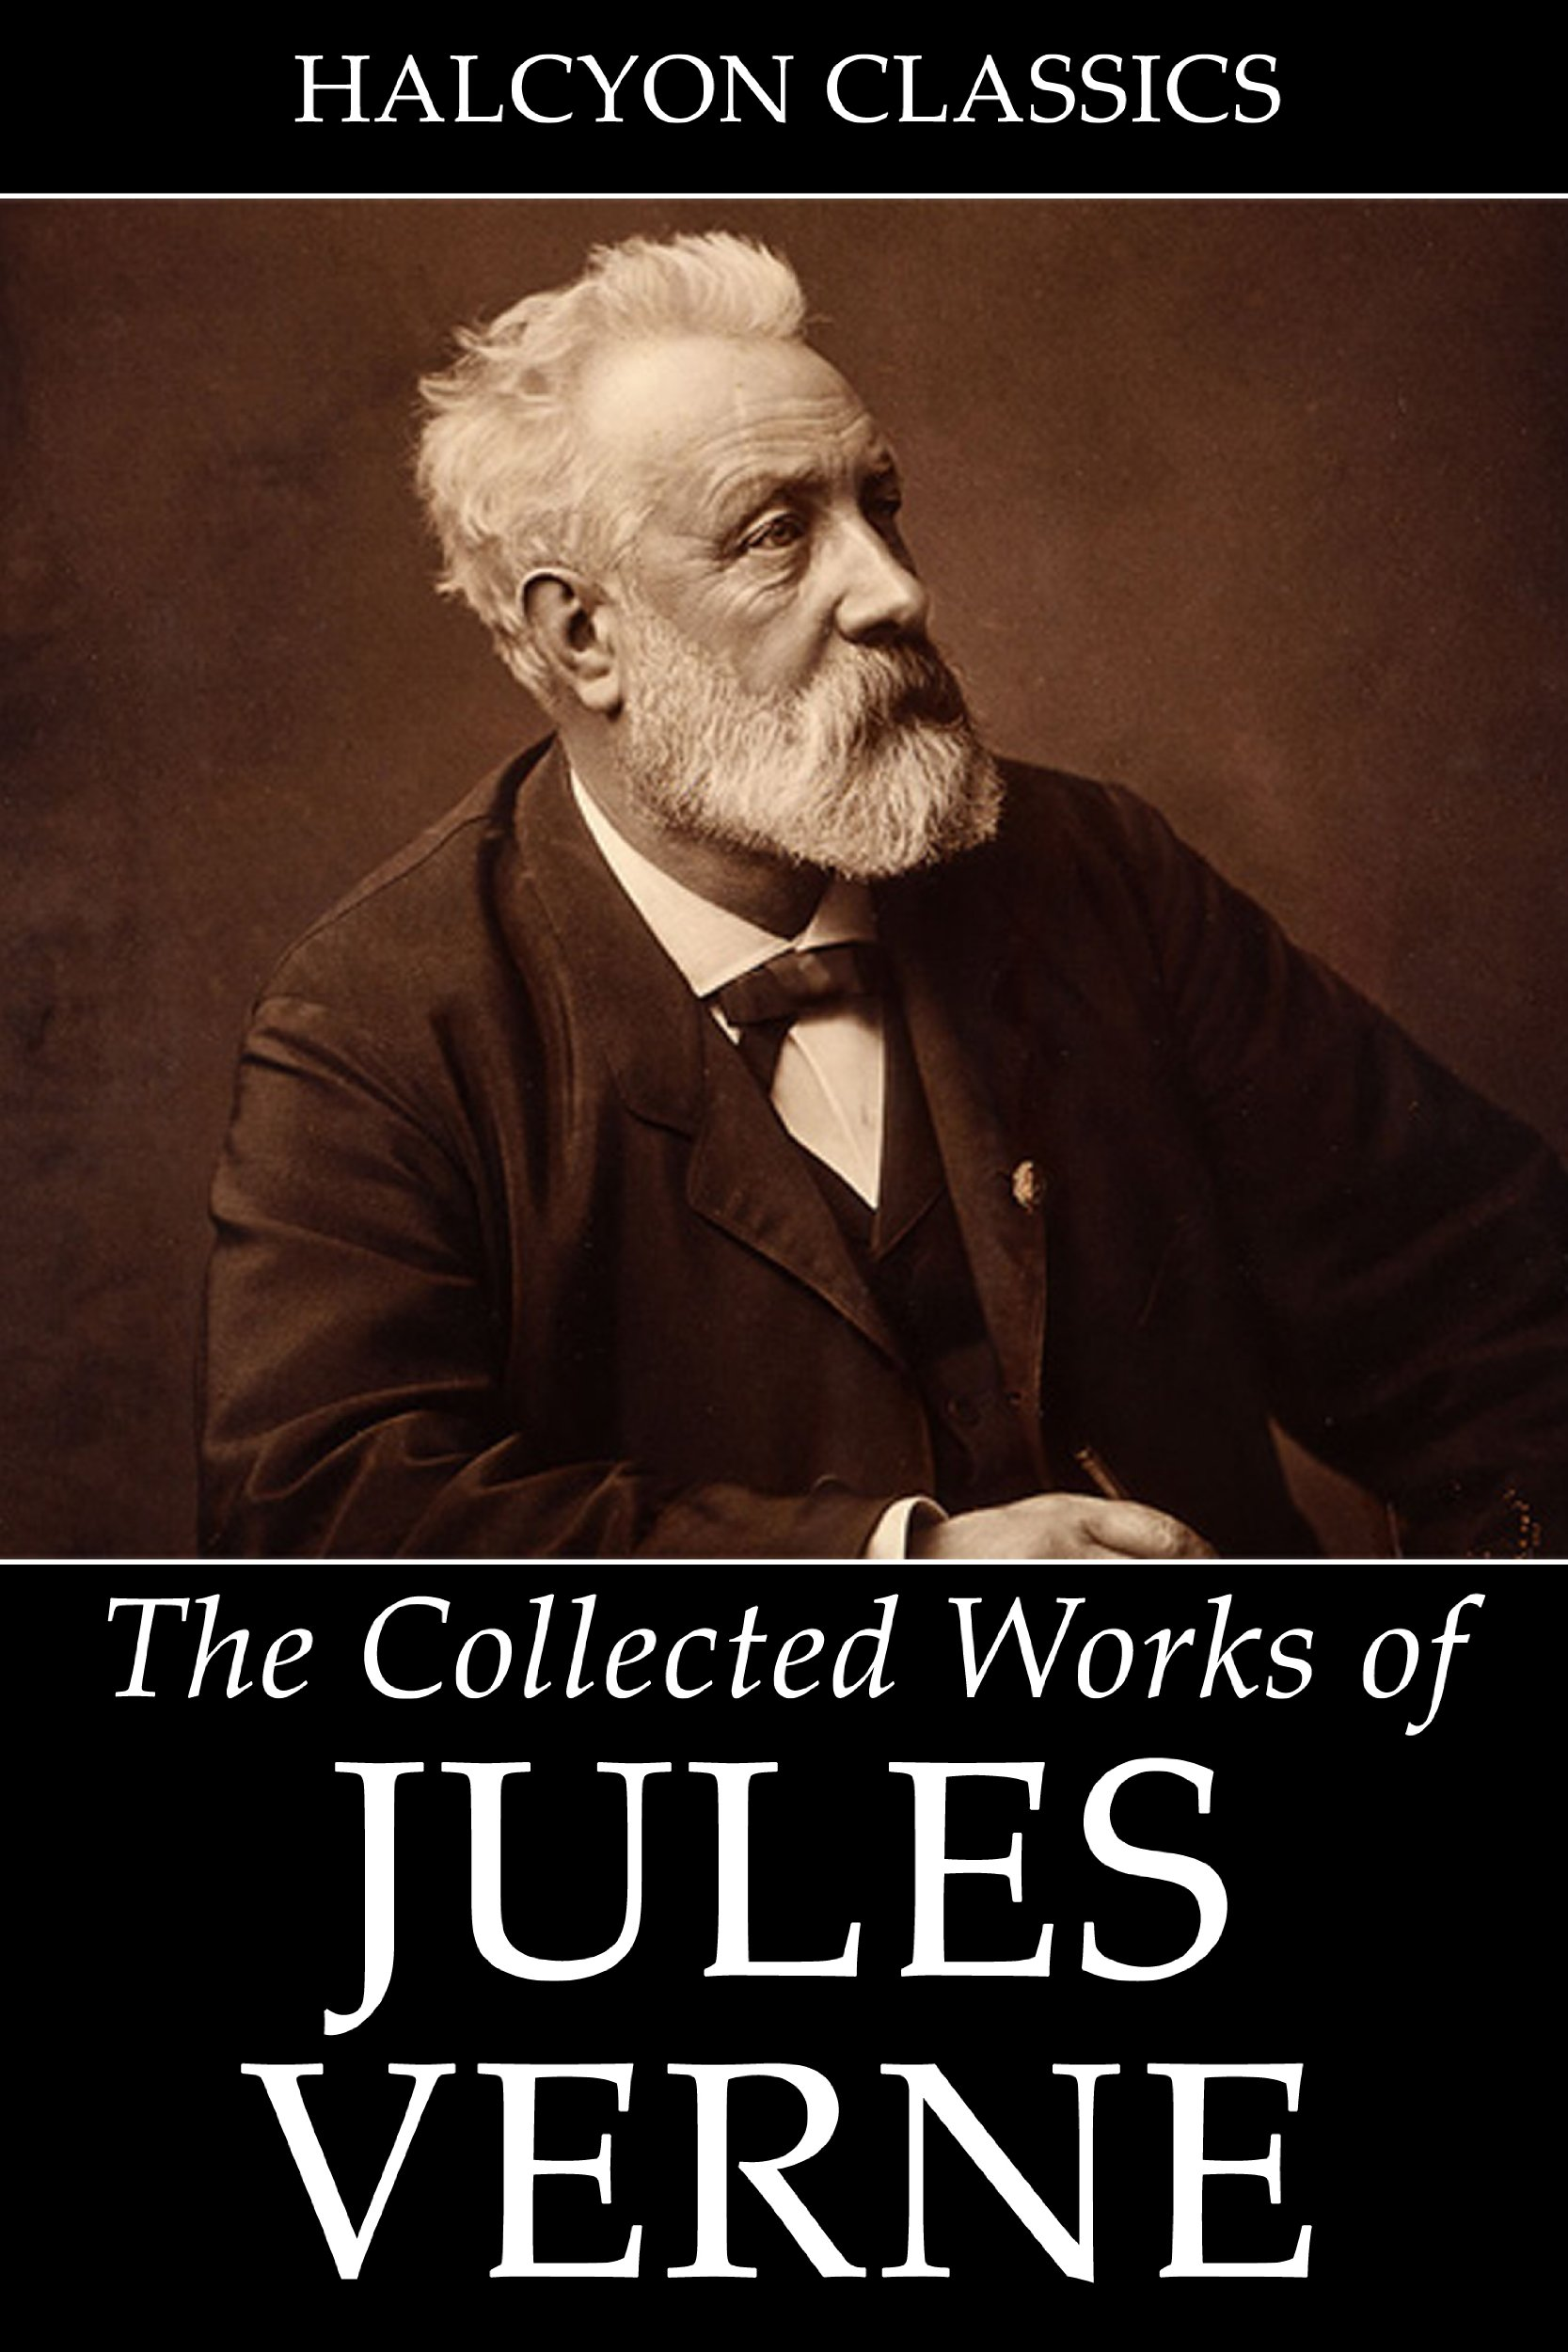 The Collected Works Of Jules Verne  36 Novels And Short Stories  Unexpurgated Edition   Halcyon Classics   English Edition